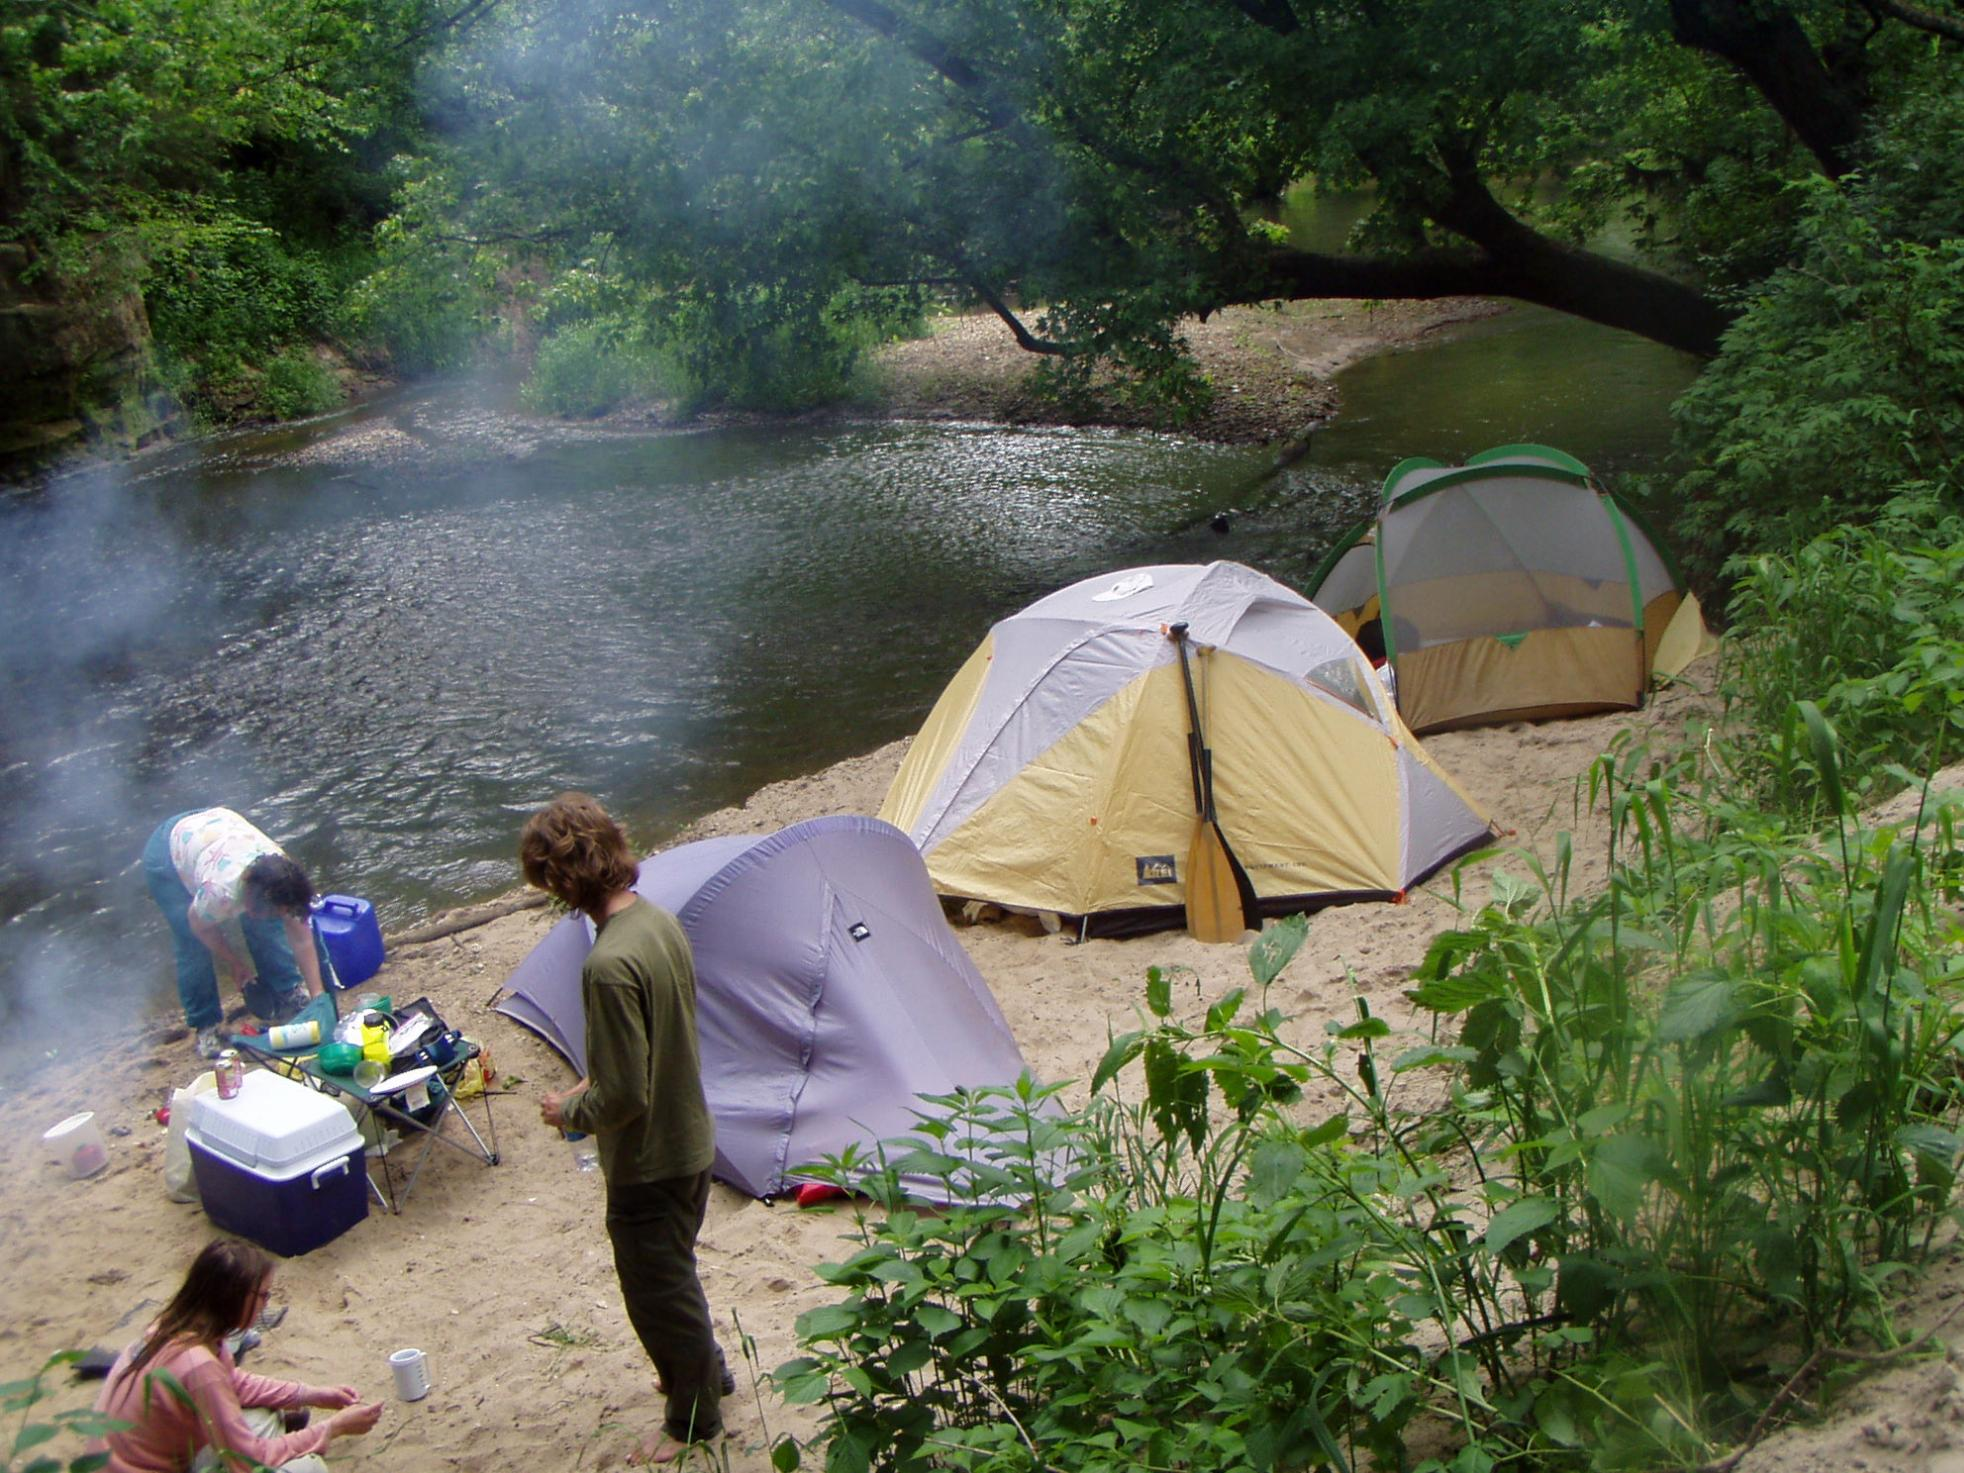 Three-fer of tents on the Kickapoo River